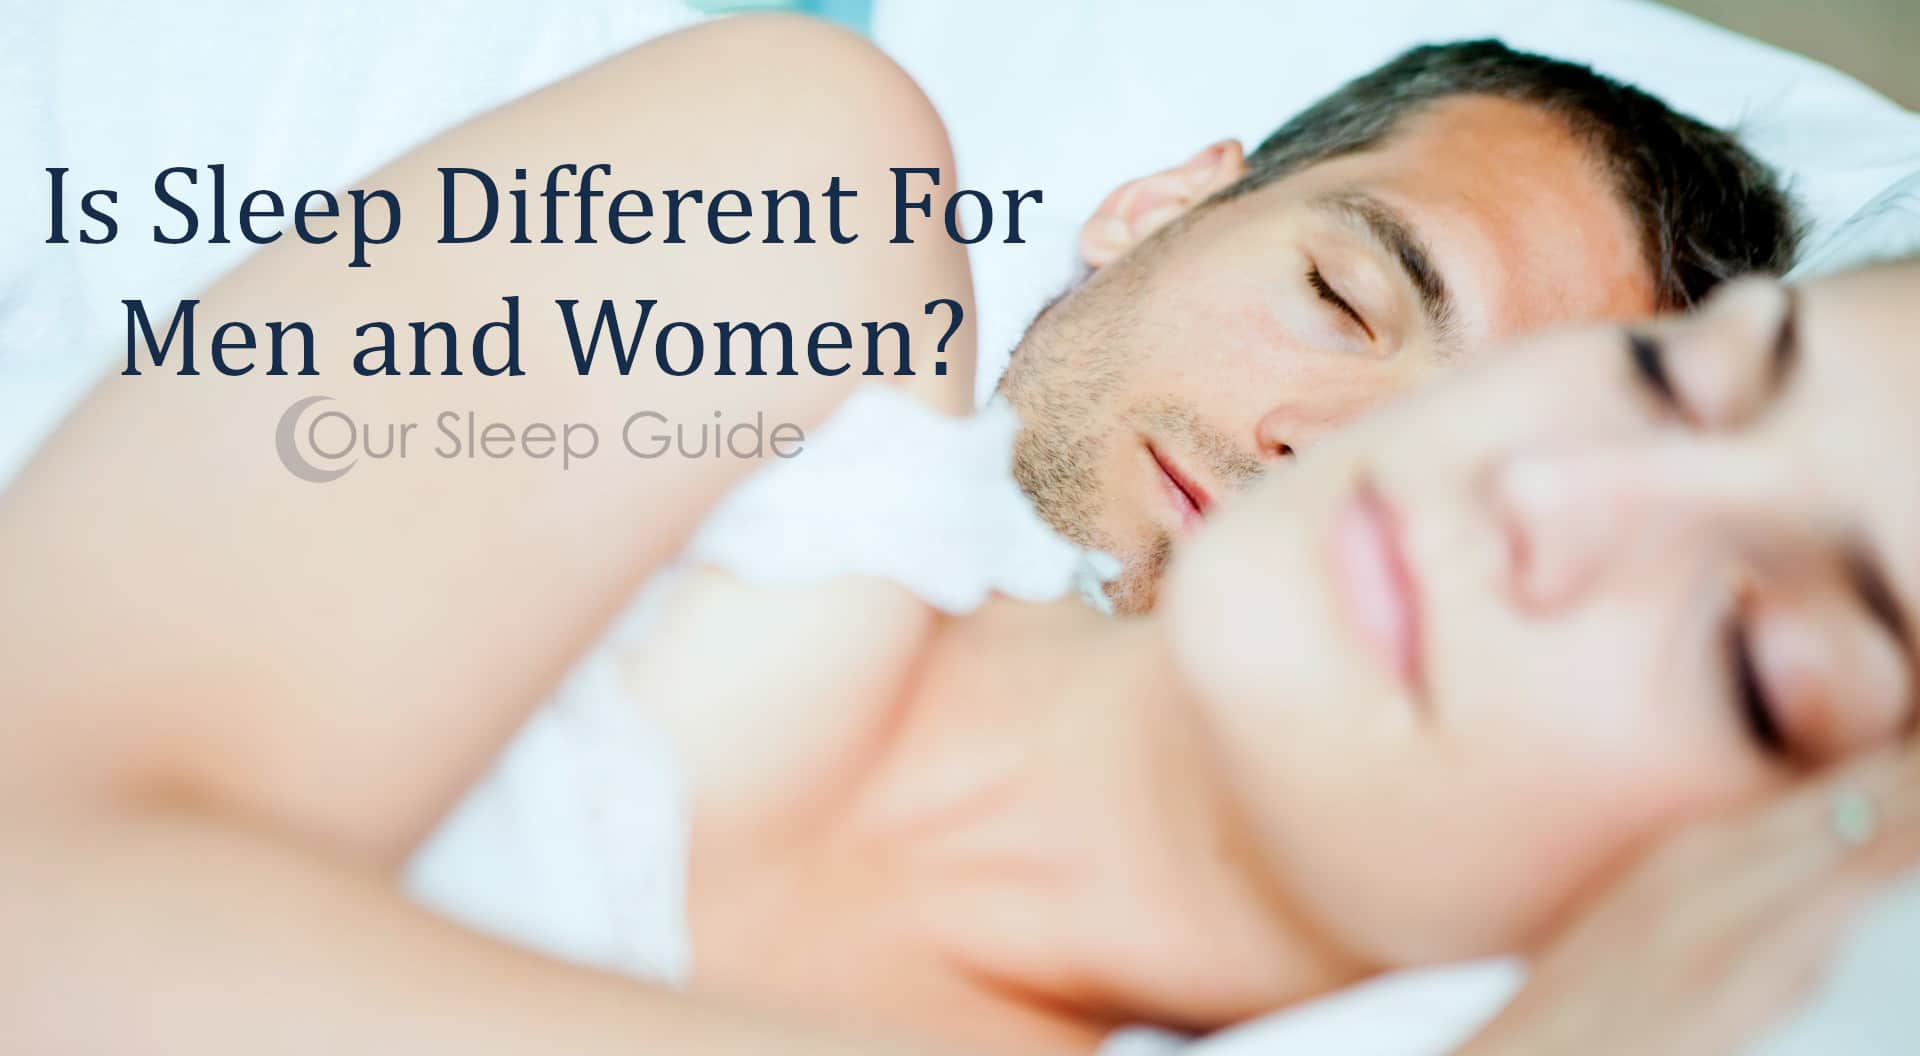 Is Sleep Different For Men and Women?